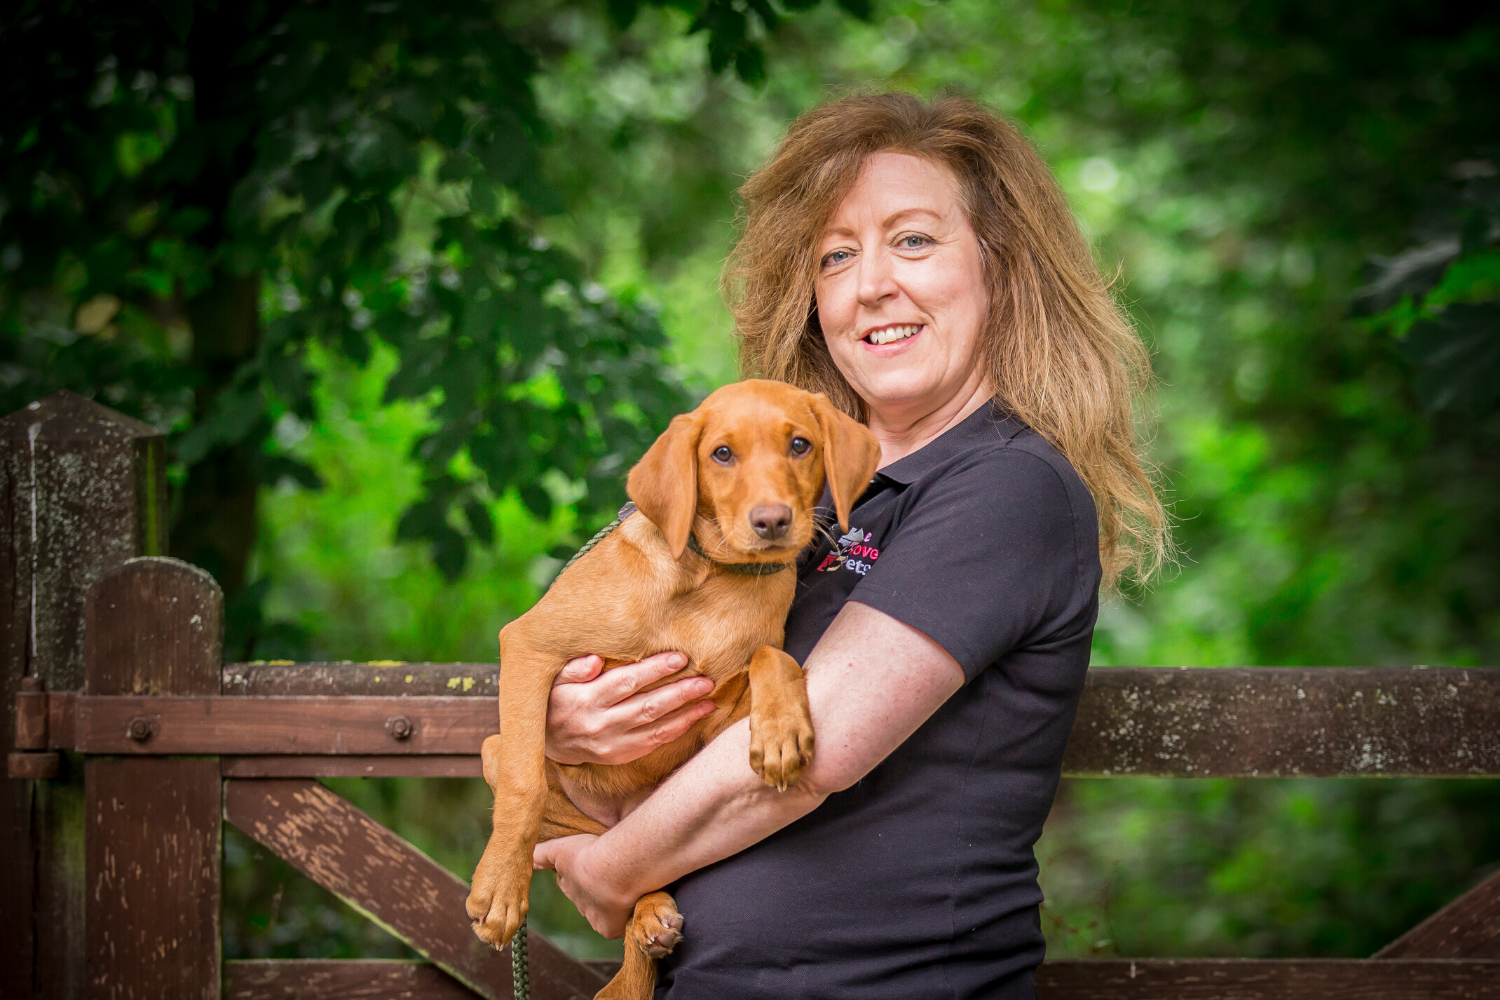 Dog walker and pet sitter in Winnersh. Multi award winning We Love Pets.